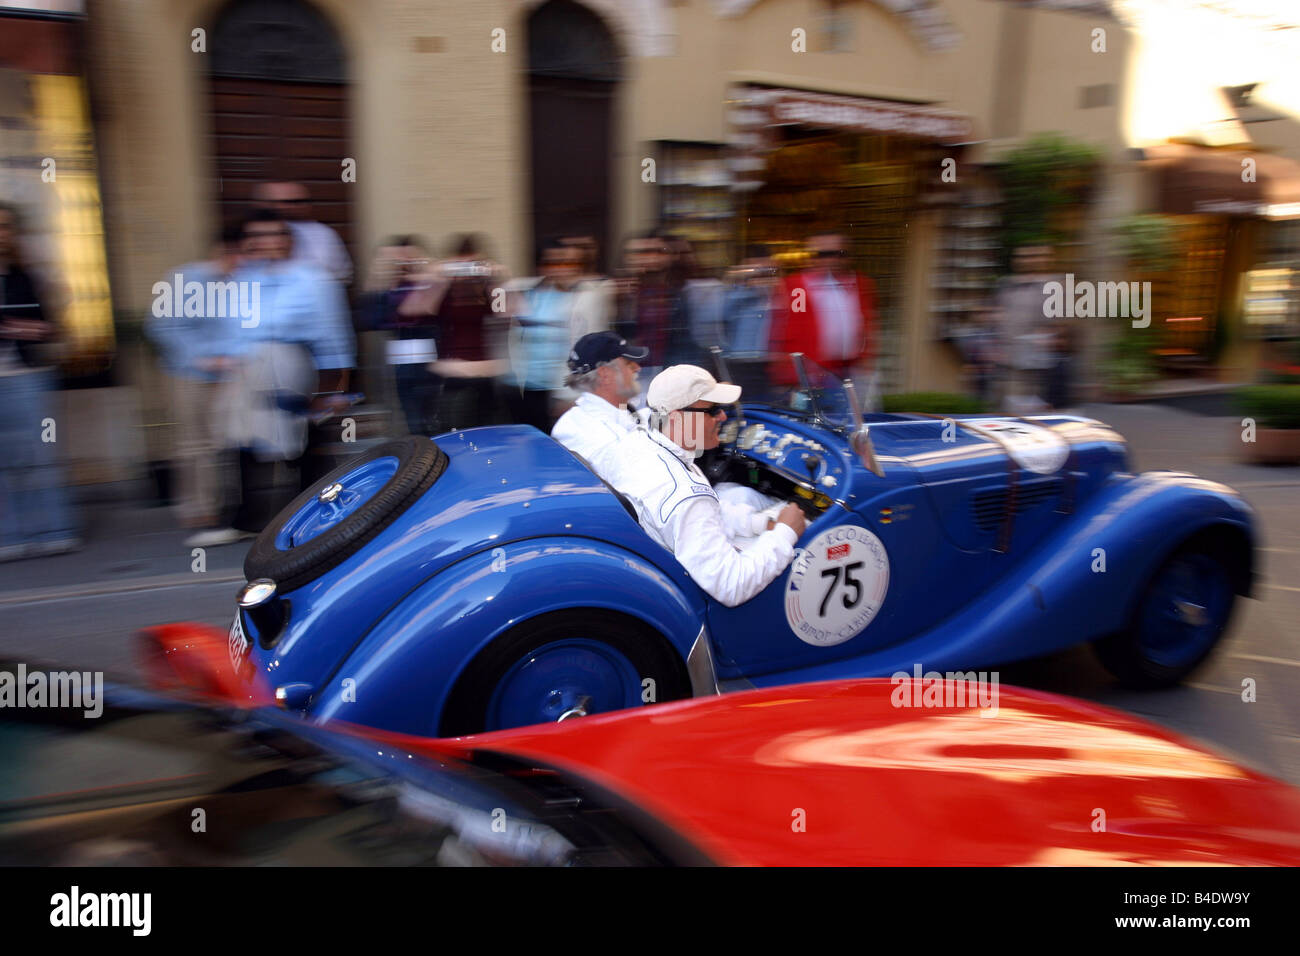 Car, Events, Vintage approx. rally, Mille Miglia 2003, landscape - Stock Image